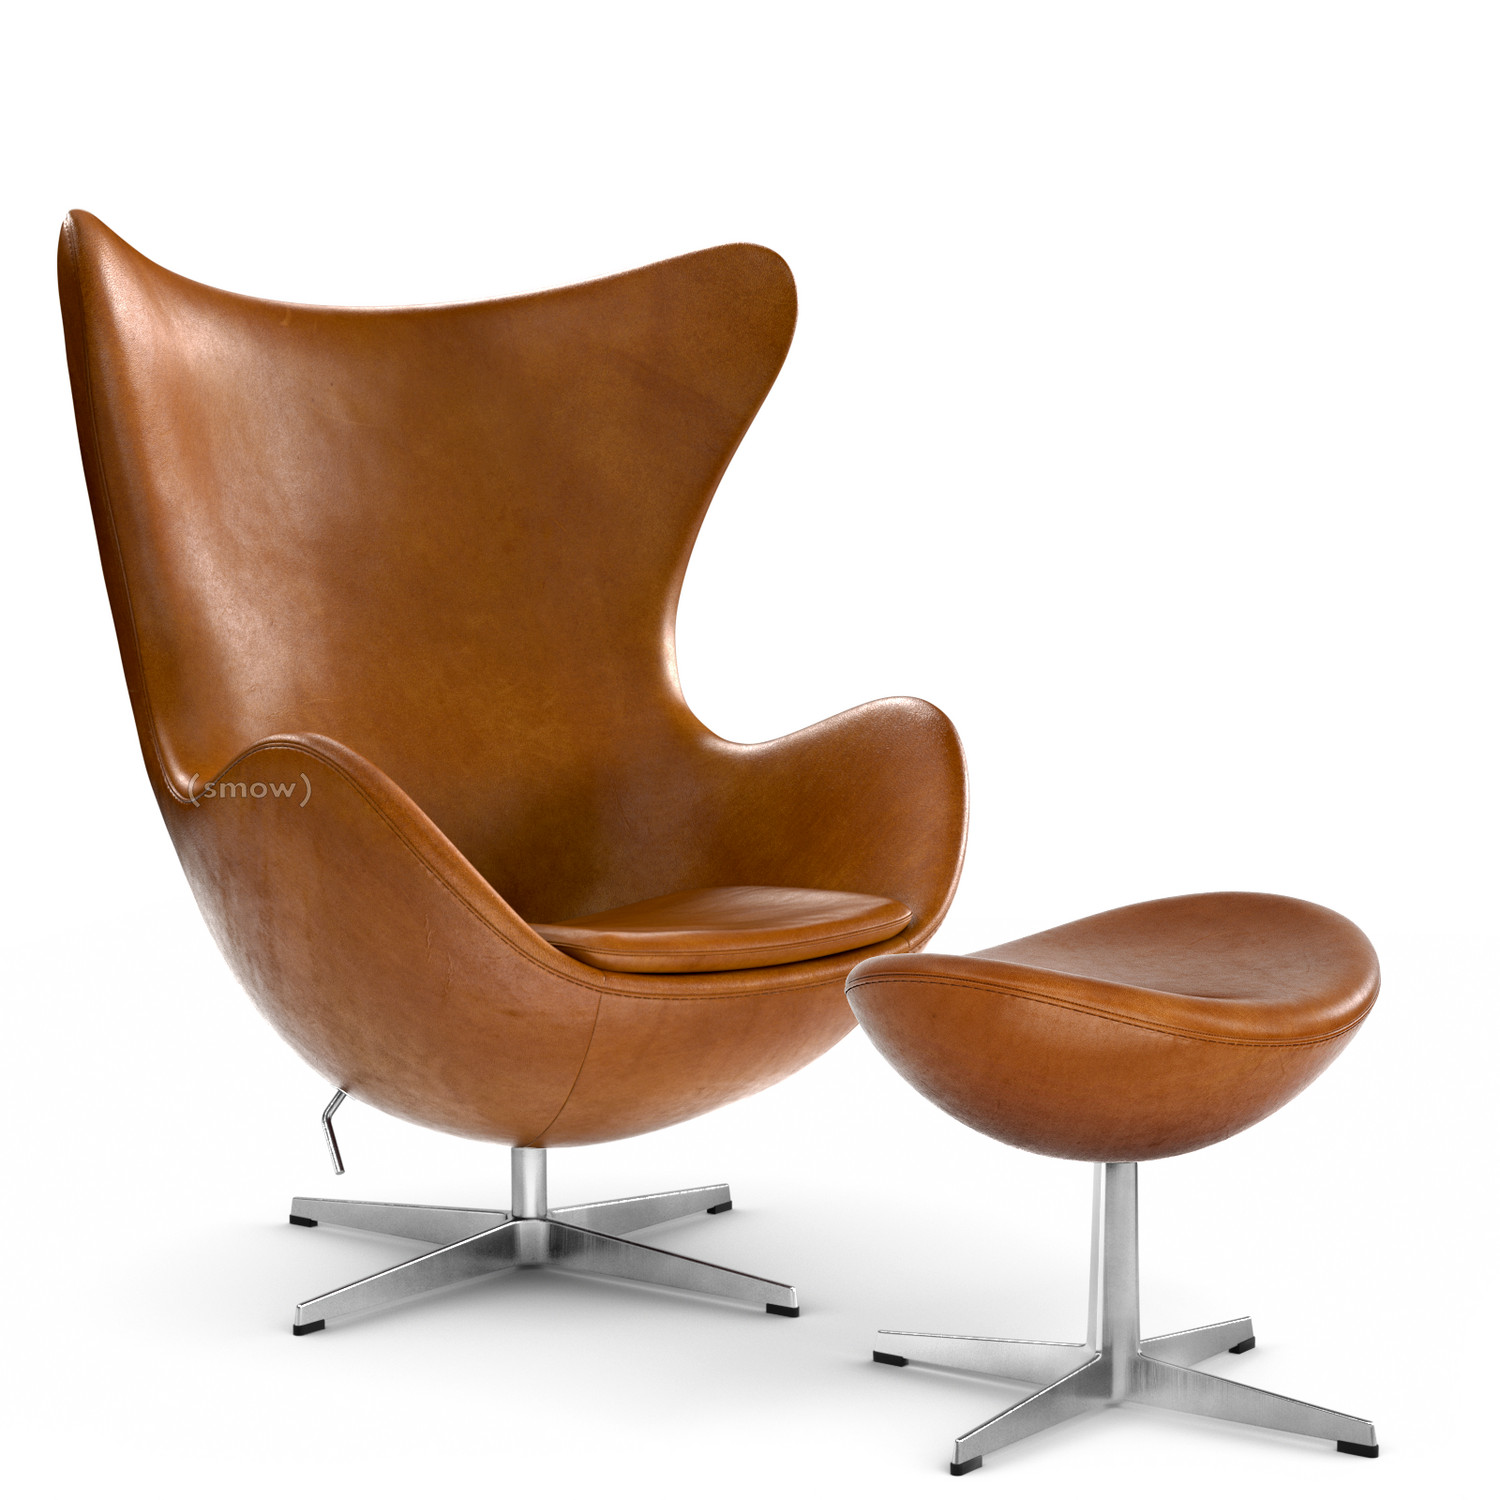 Schon Egg Chair Elegance Leather|Walnut|With Footstool